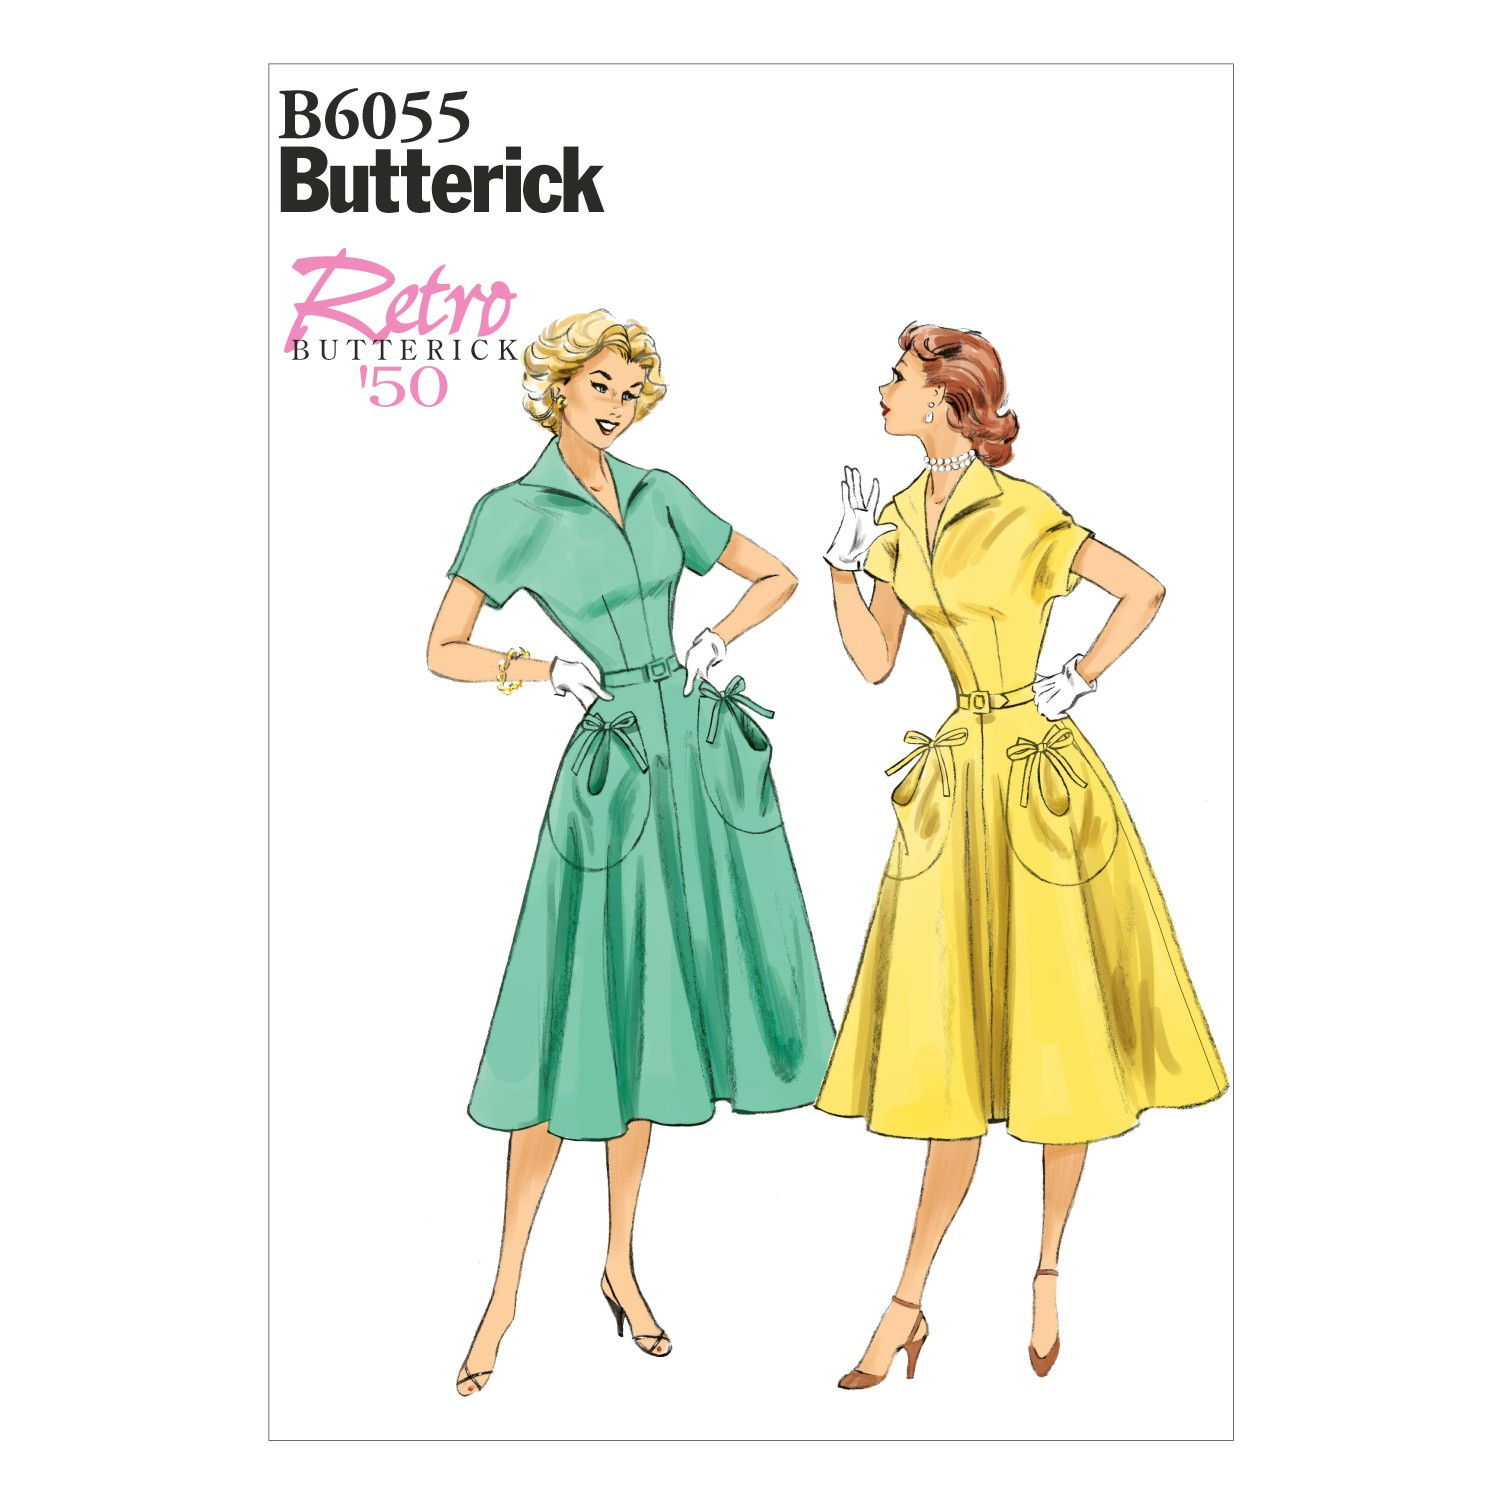 Butterick Sewing Pattern 6055 Misses' Dress & Belt